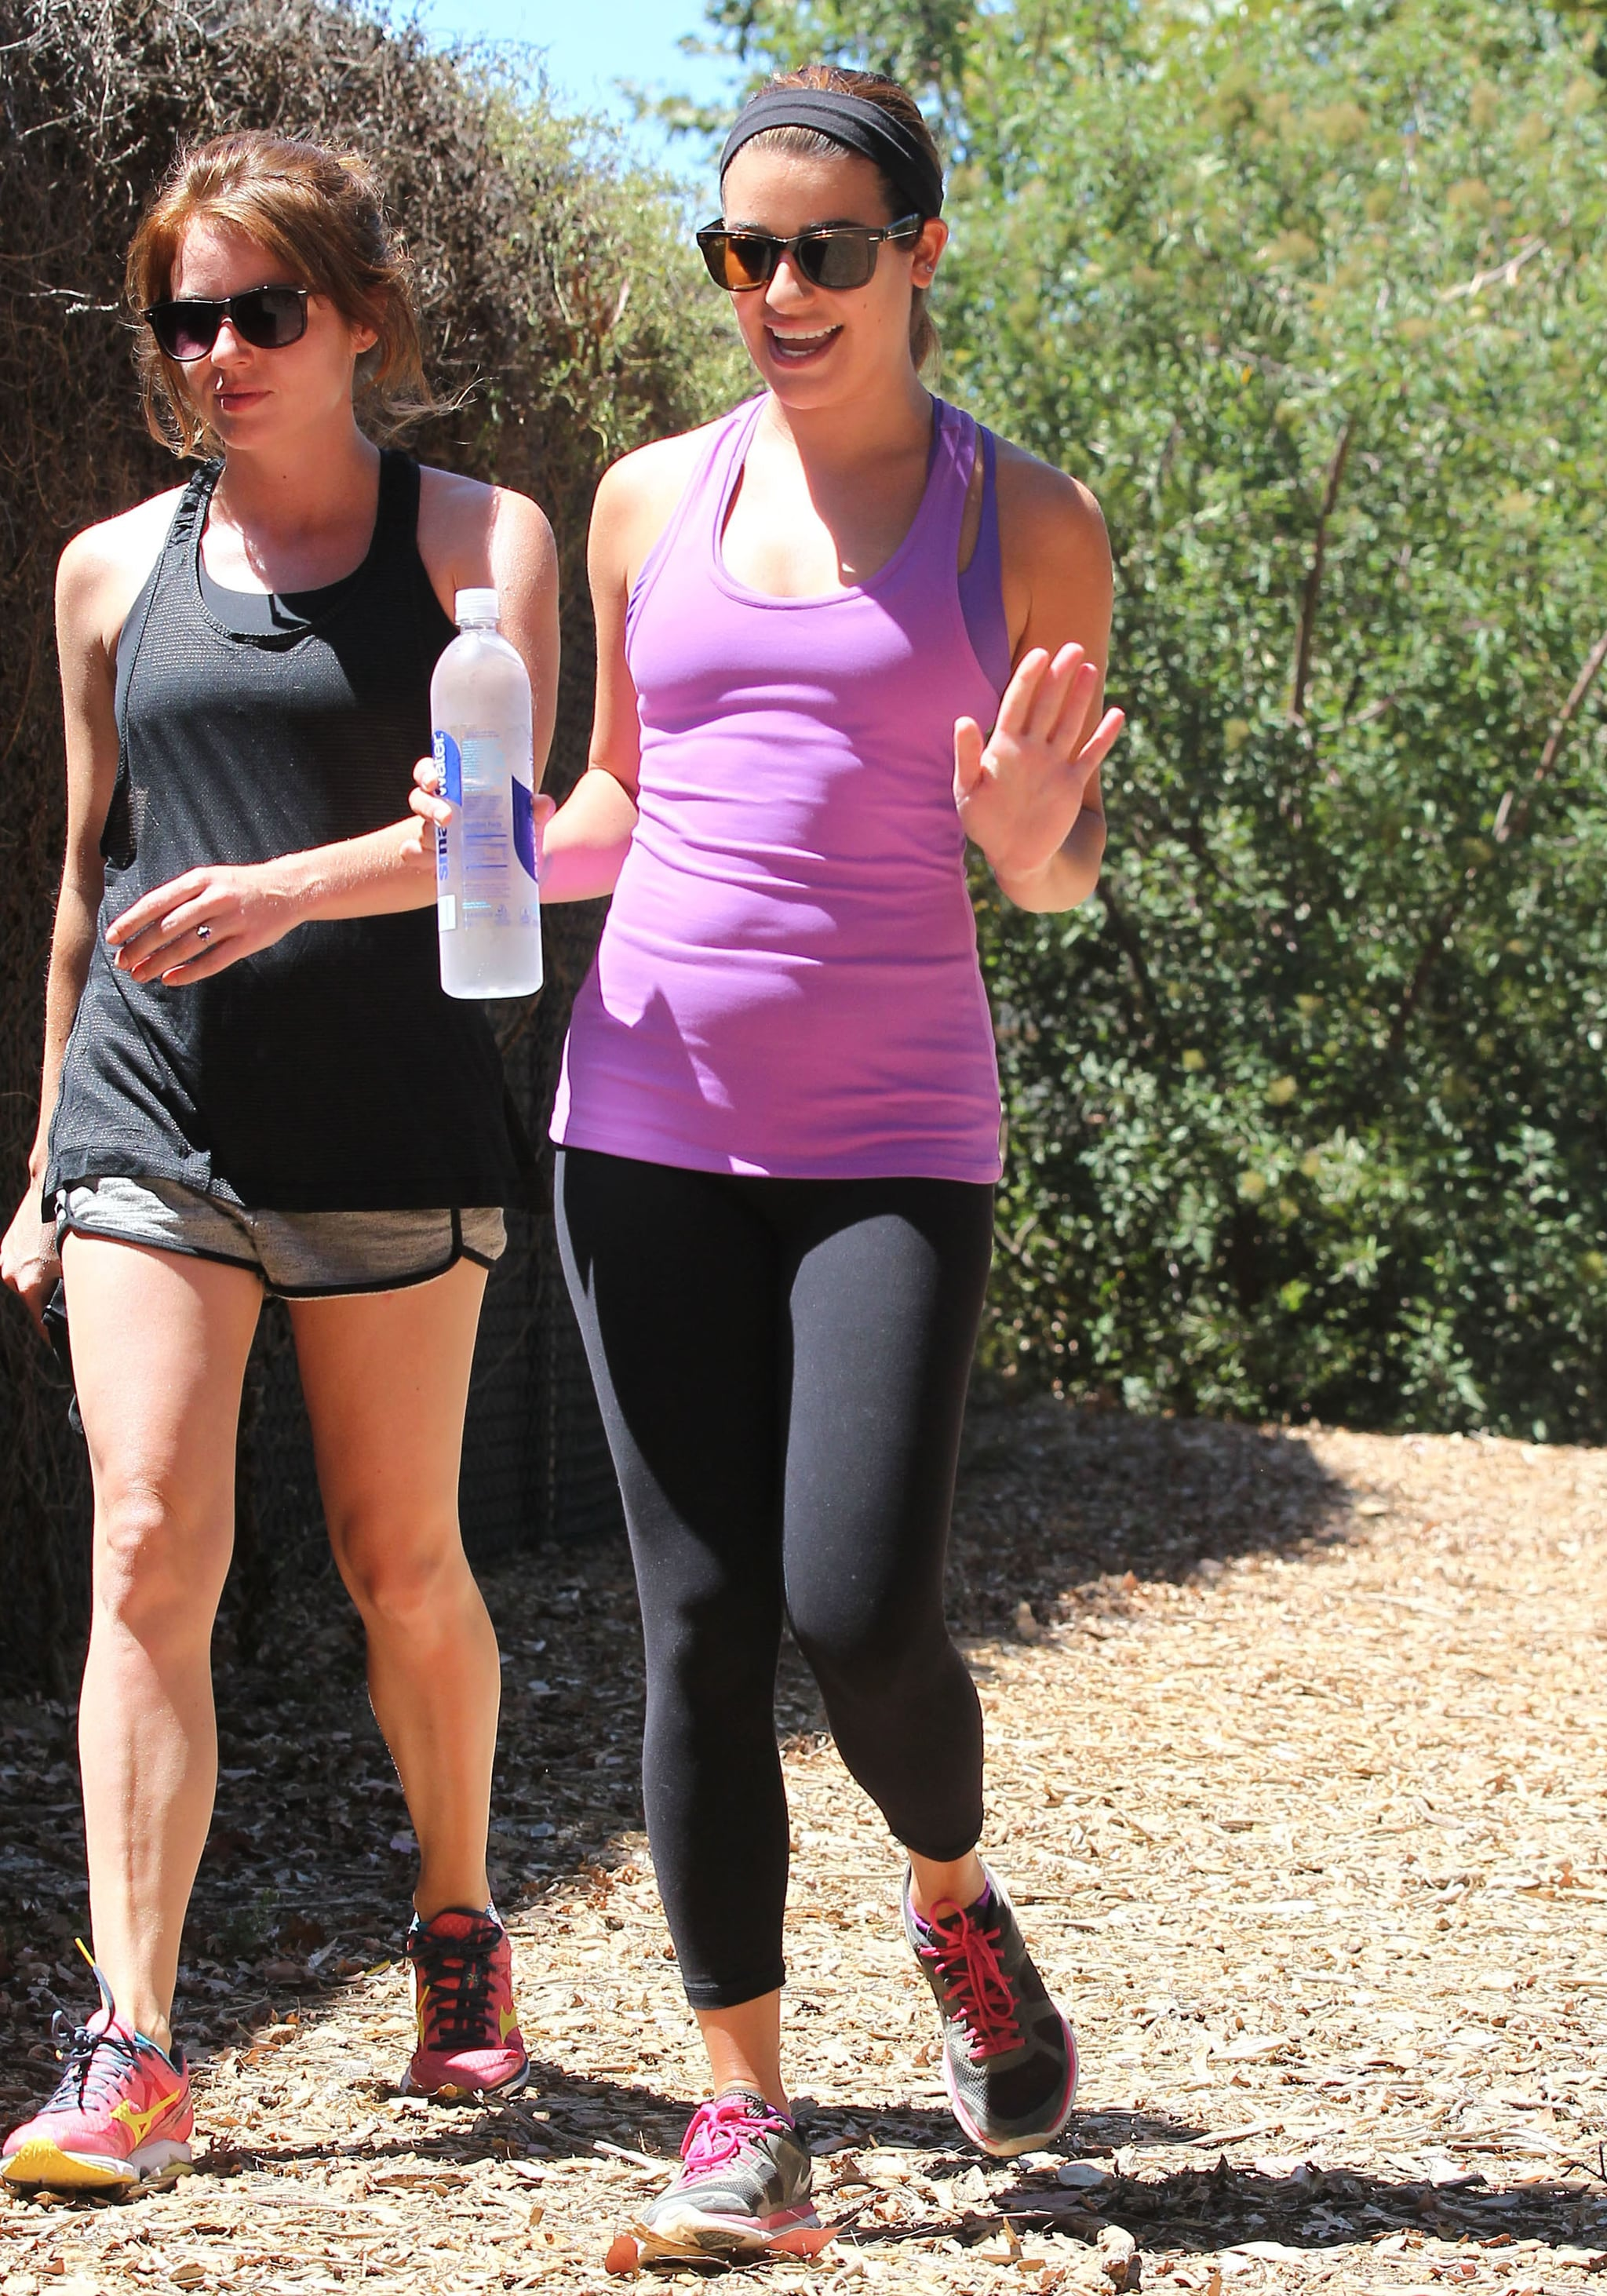 Lea Michele flashed a smile while hiking in LA with a girlfriend on Sunday.